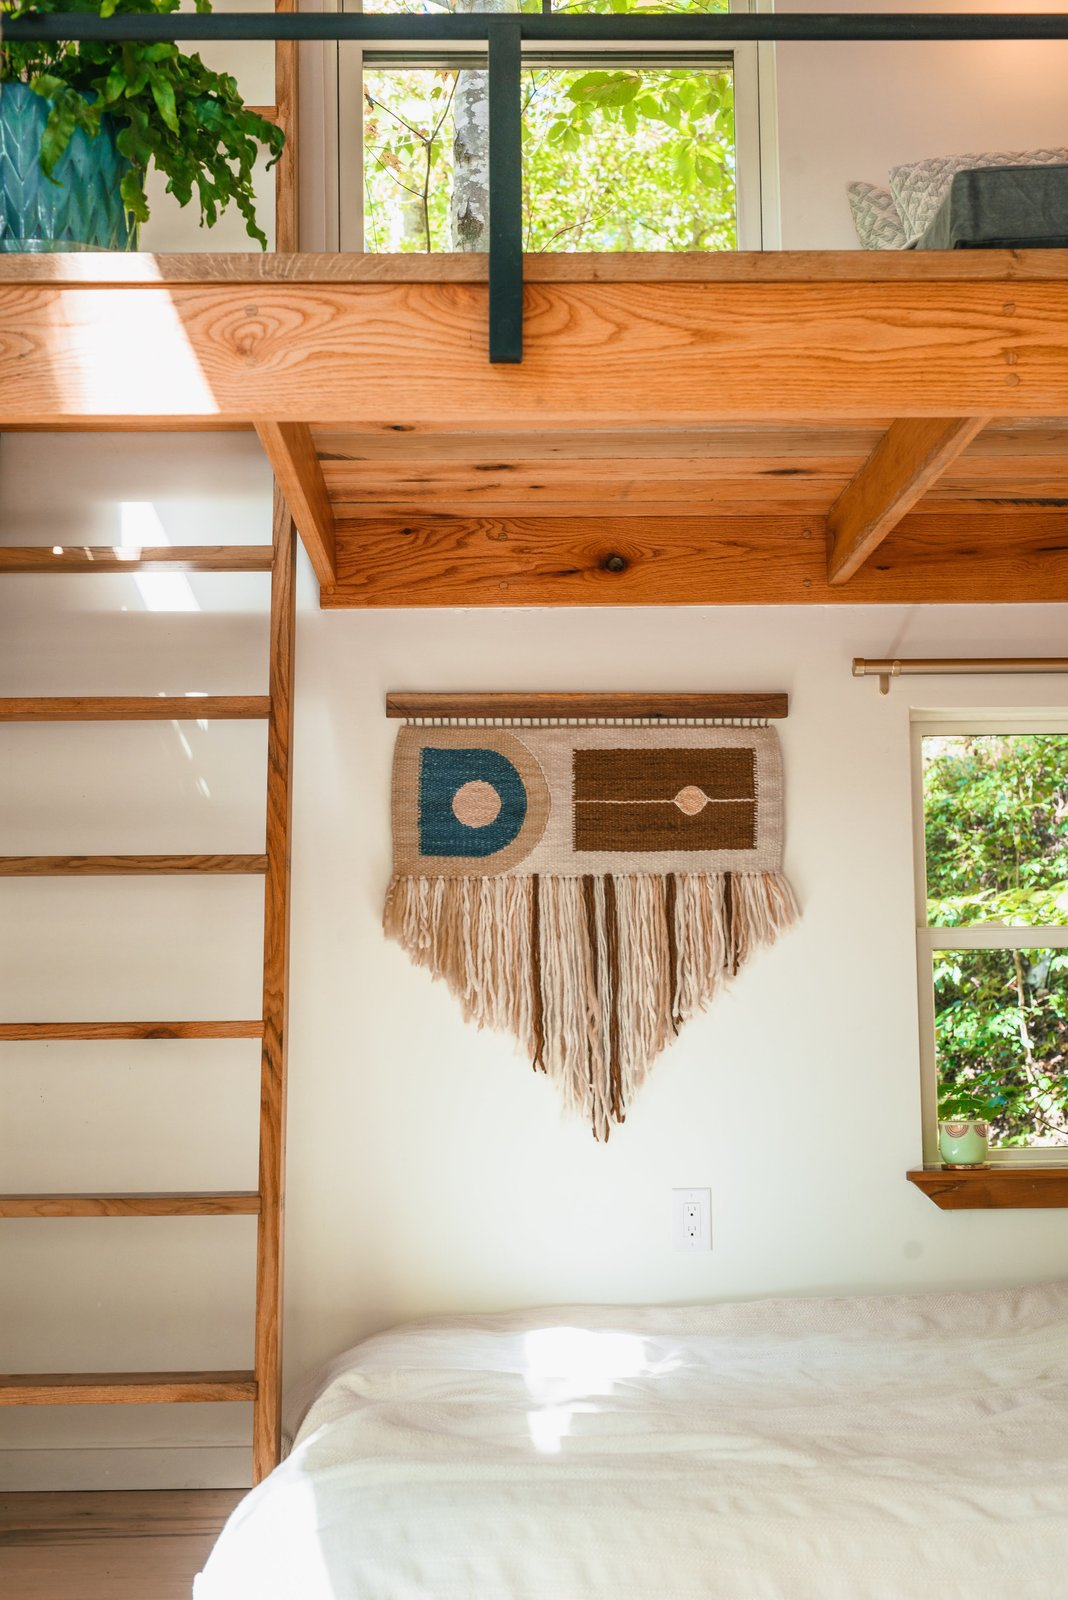 """Bedroom, Bed, and Medium Hardwood Floor The bedroom nook features a hand-loomed tapestry by Jessica Sanchez, owner of Rusted Earth, which produces sustainable, handcrafted home decor """"from the soil up"""".   Photo 8 of 11 in A Tiny Cabin in North Carolina Is an Enchanting Mix of Japanese and Scandinavian Style"""